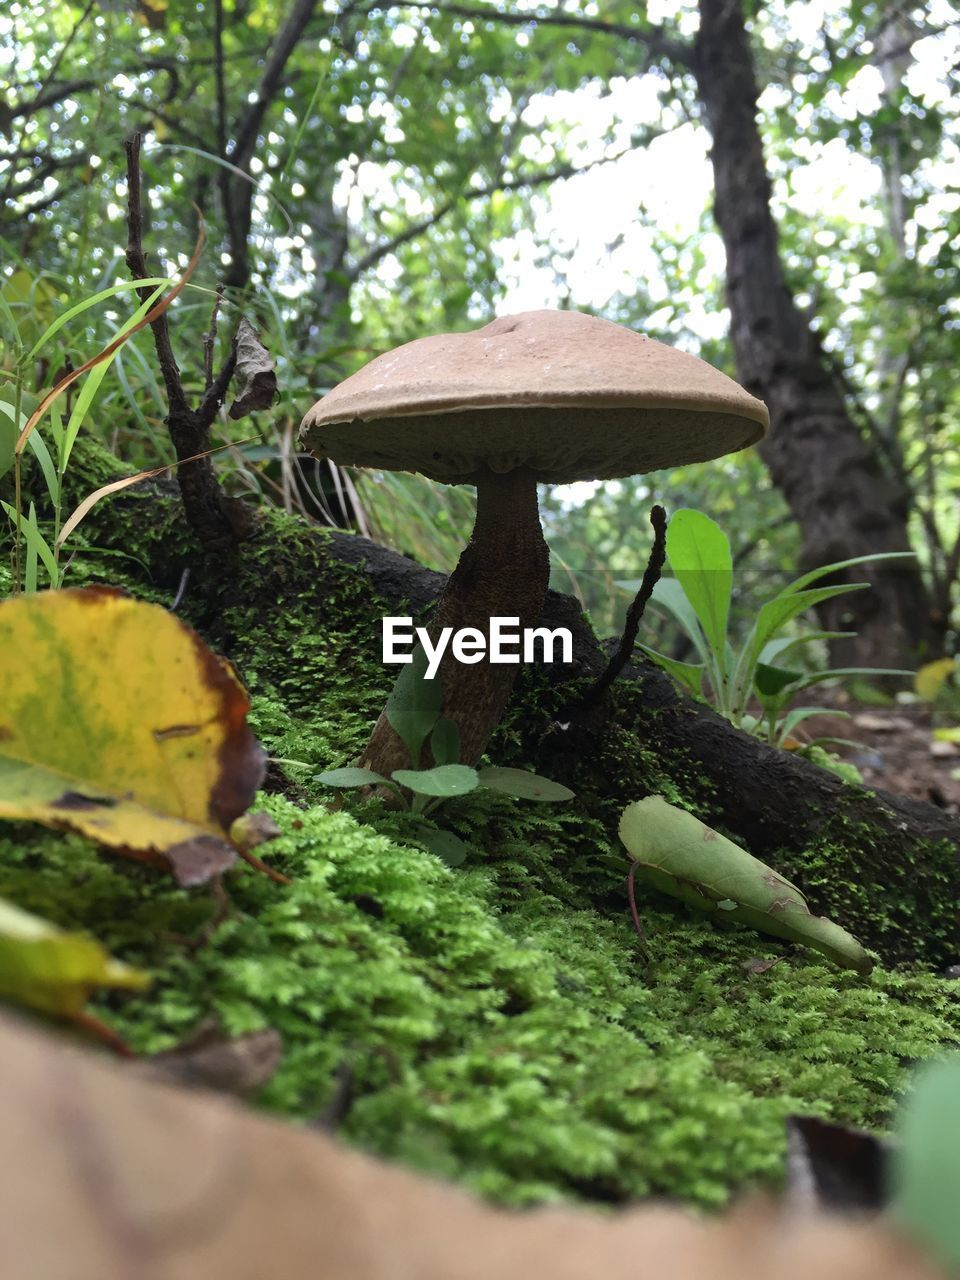 plant, growth, tree, vegetable, green color, food, nature, selective focus, mushroom, fungus, no people, beauty in nature, land, day, moss, leaf, close-up, plant part, food and drink, forest, outdoors, toadstool, surface level